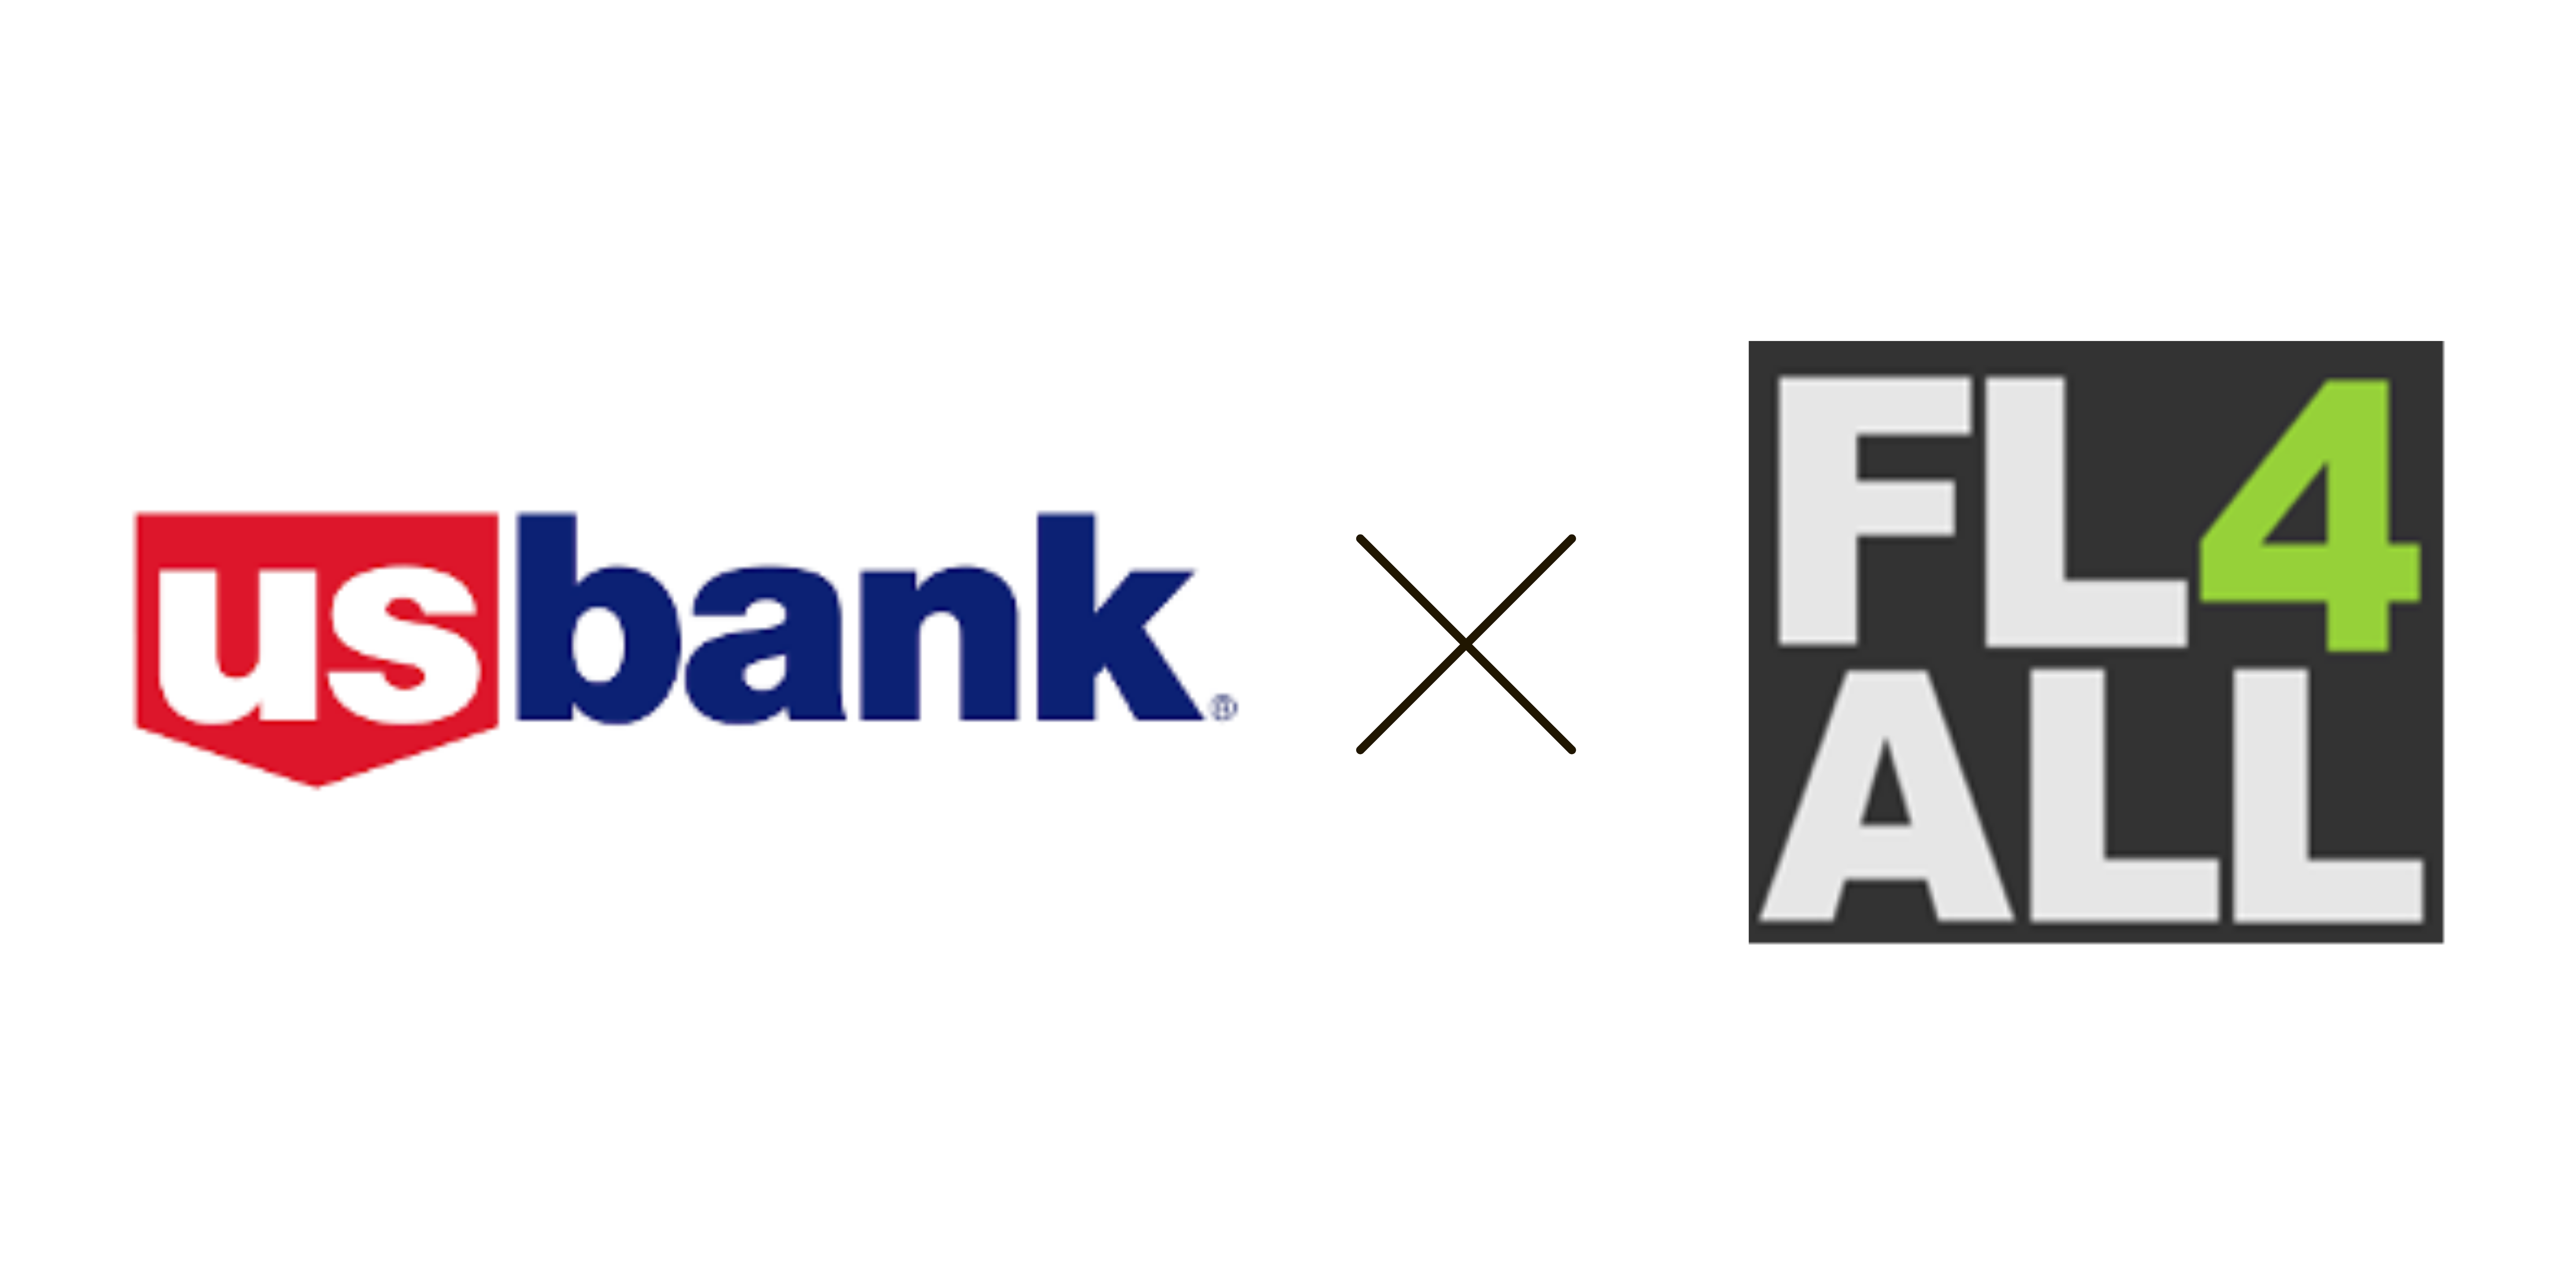 U.S. Bank Joins Financial Literacy for All (FL4A)